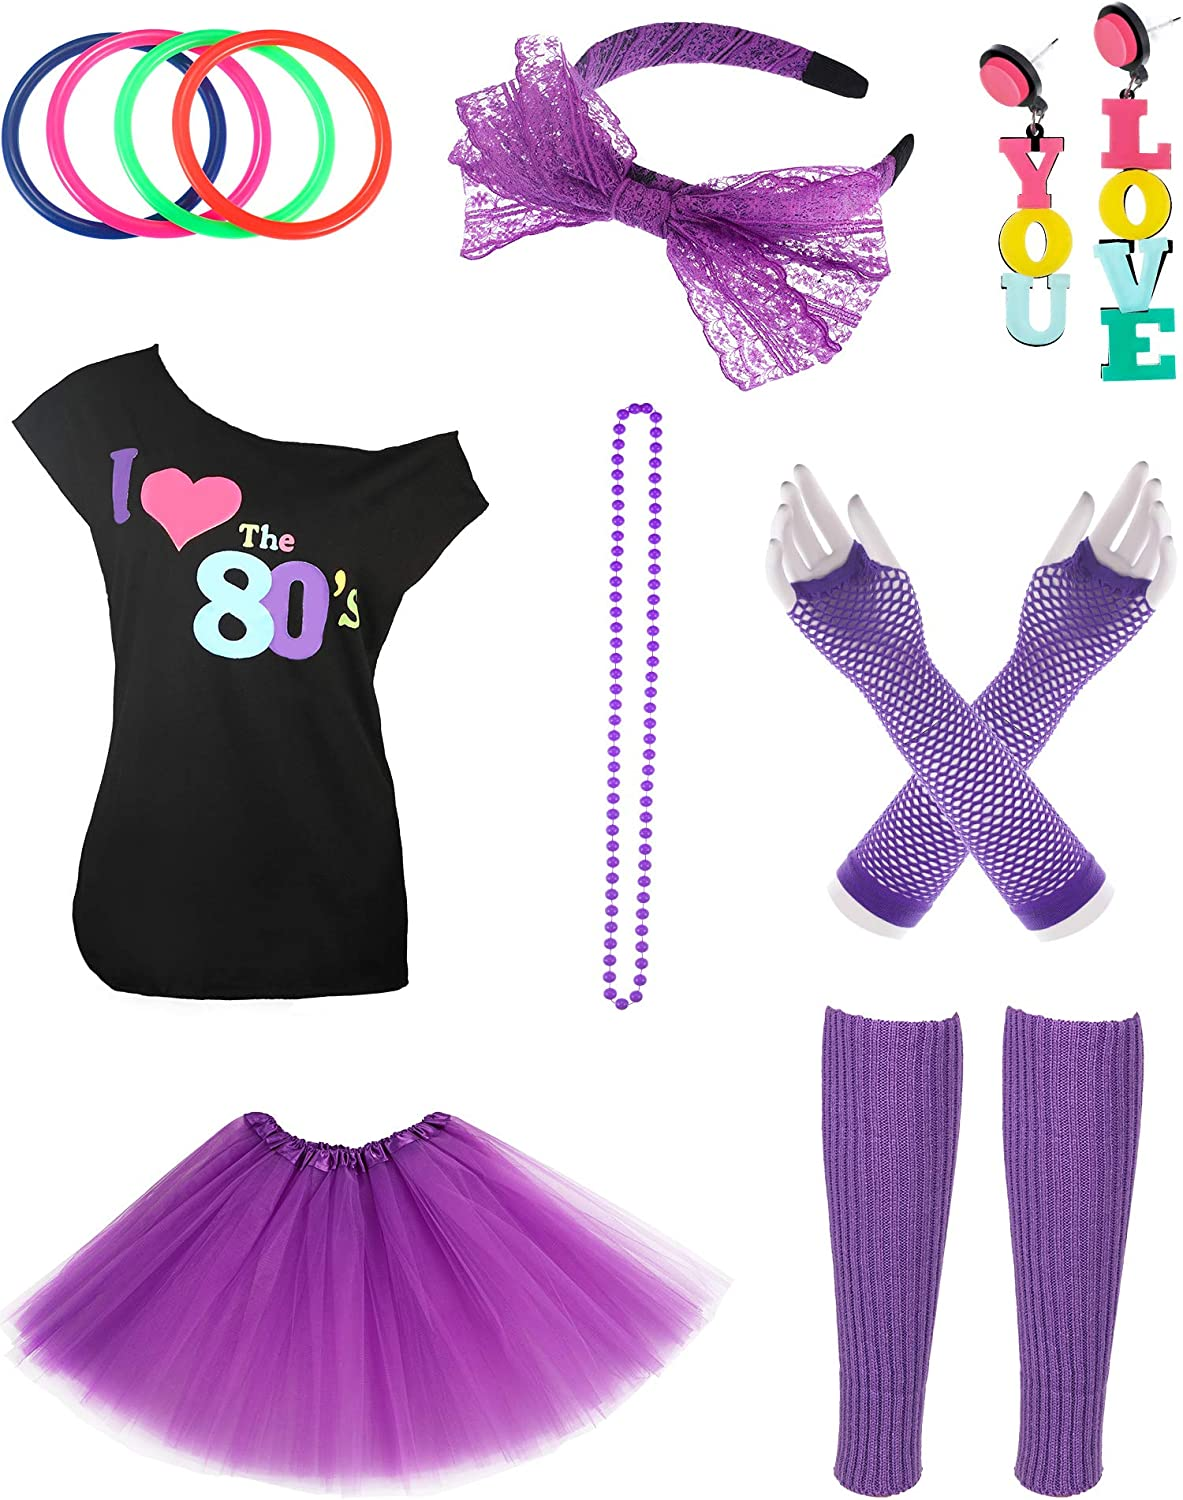 Jetec 9s Costume Accessories Set I Love 9s Skirt Necklace Bangle Leg  Warmers Earrings Gloves T-Shirt for Party Accessory (L Size (for 9-9  Years